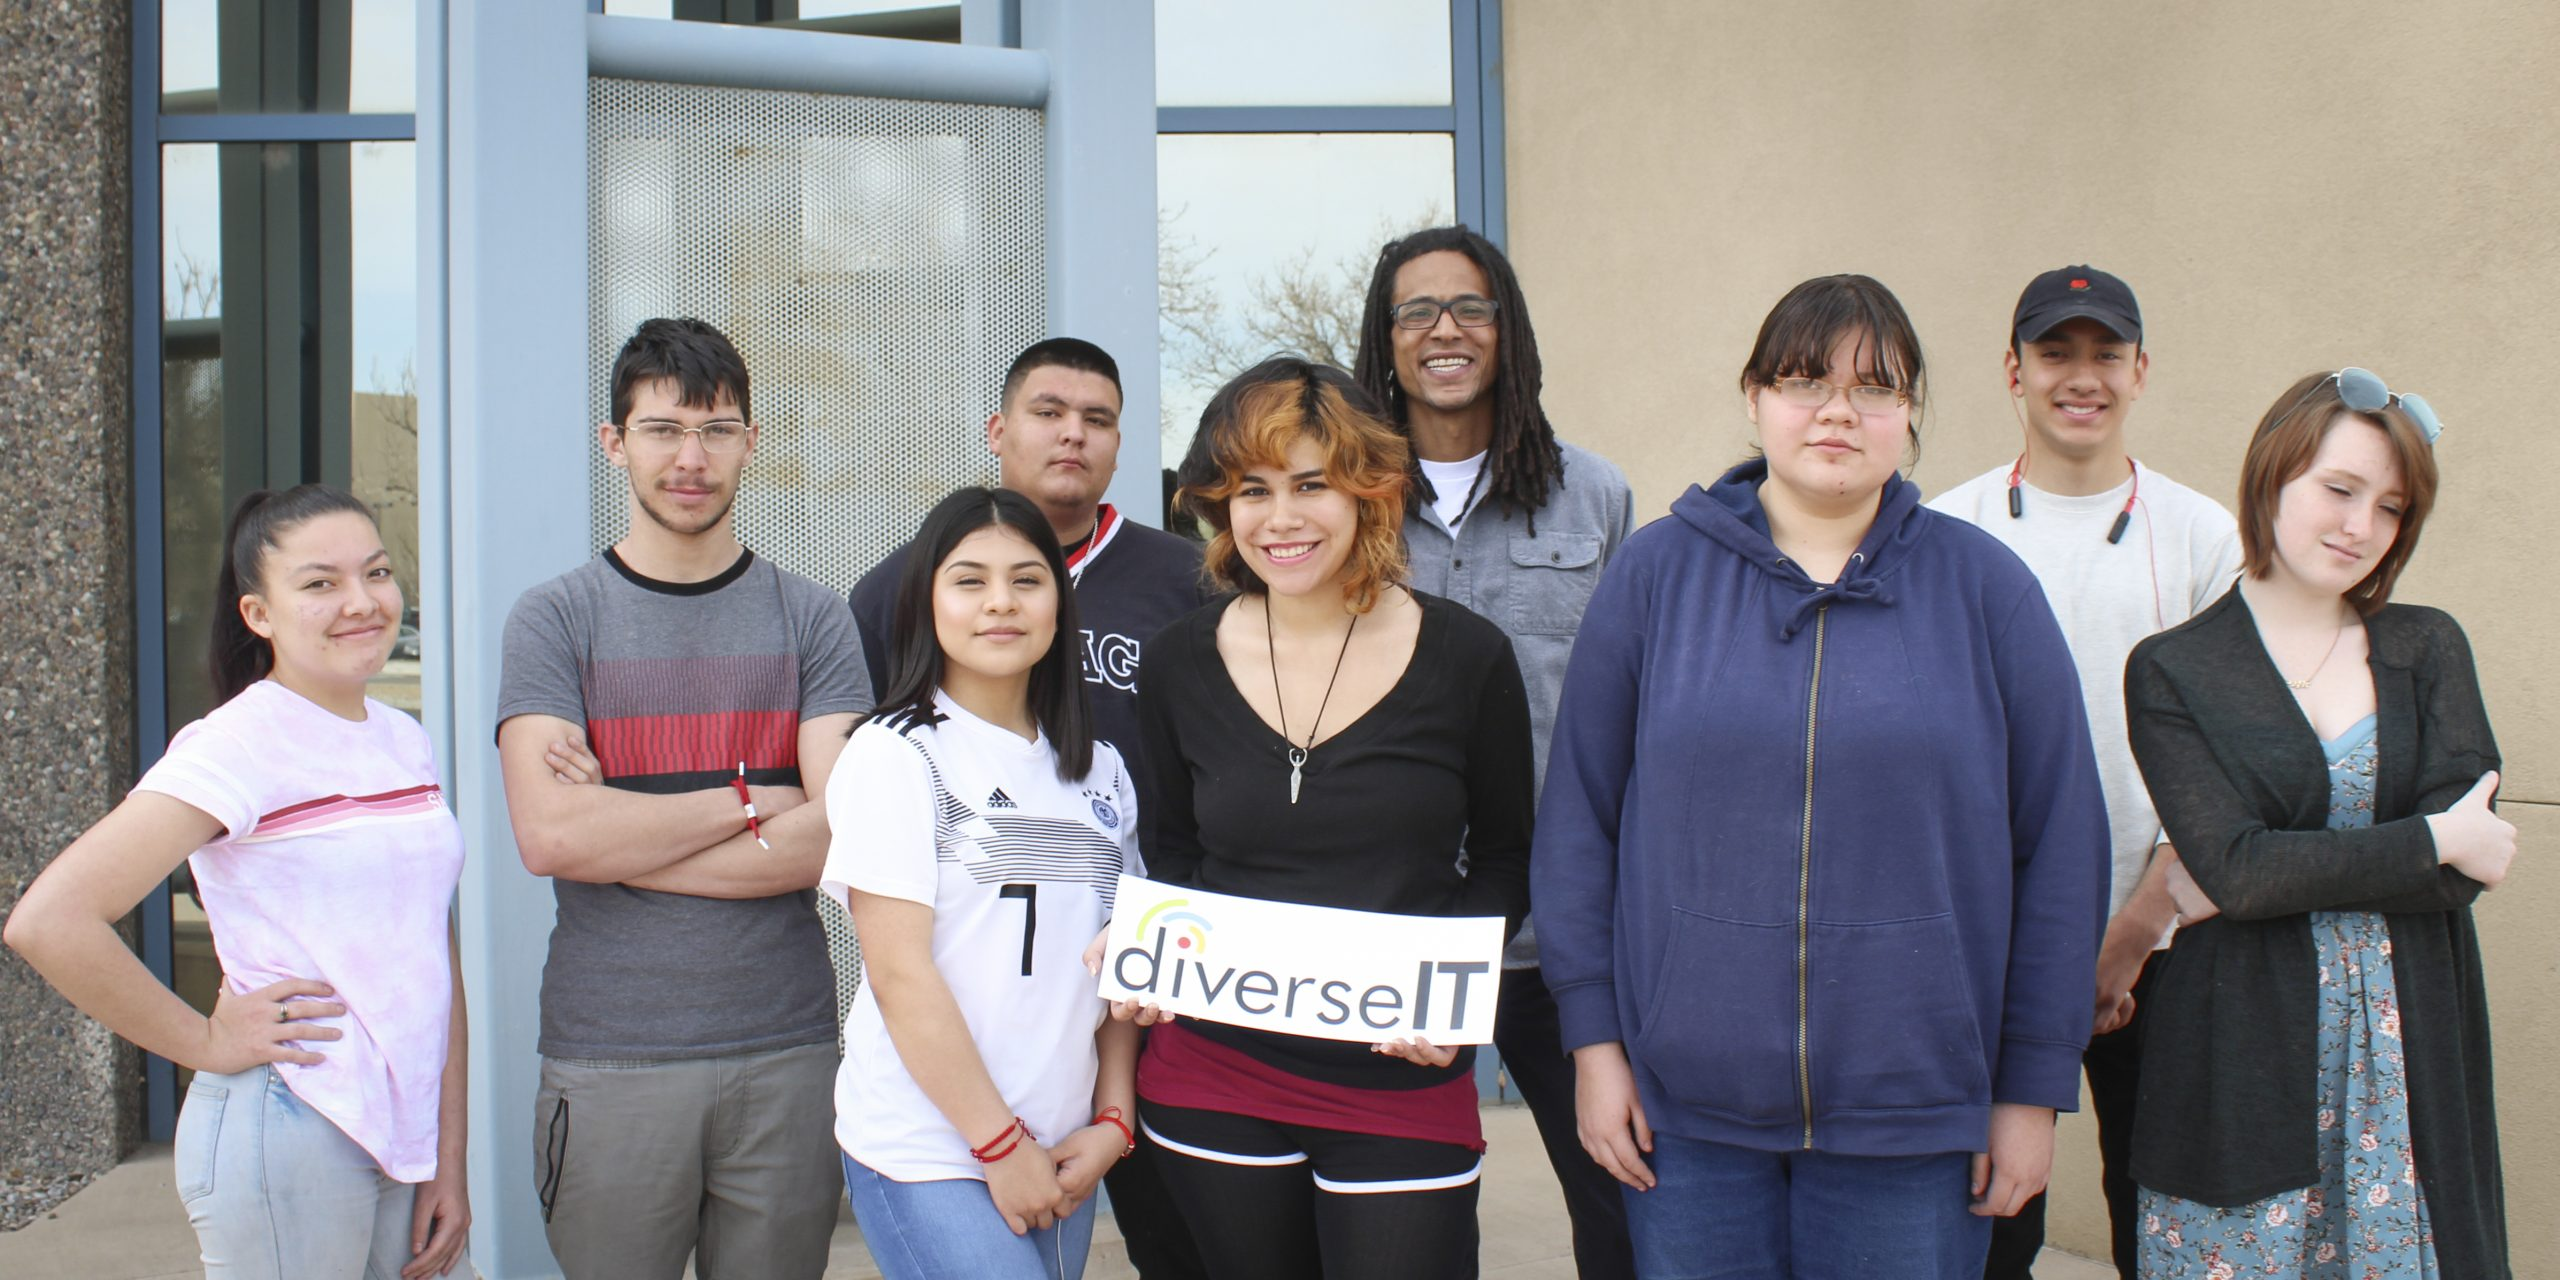 A group of nine people are standing together and posing for the camera. Isabel is in the center, fourth from the left; and Cassidy is also in the center, second from the right. Isabel is holding a sign with the DiverseIT logo. Jordan, the DiverseIT Program Manager, is standing in between and behind them. The other students are around them.